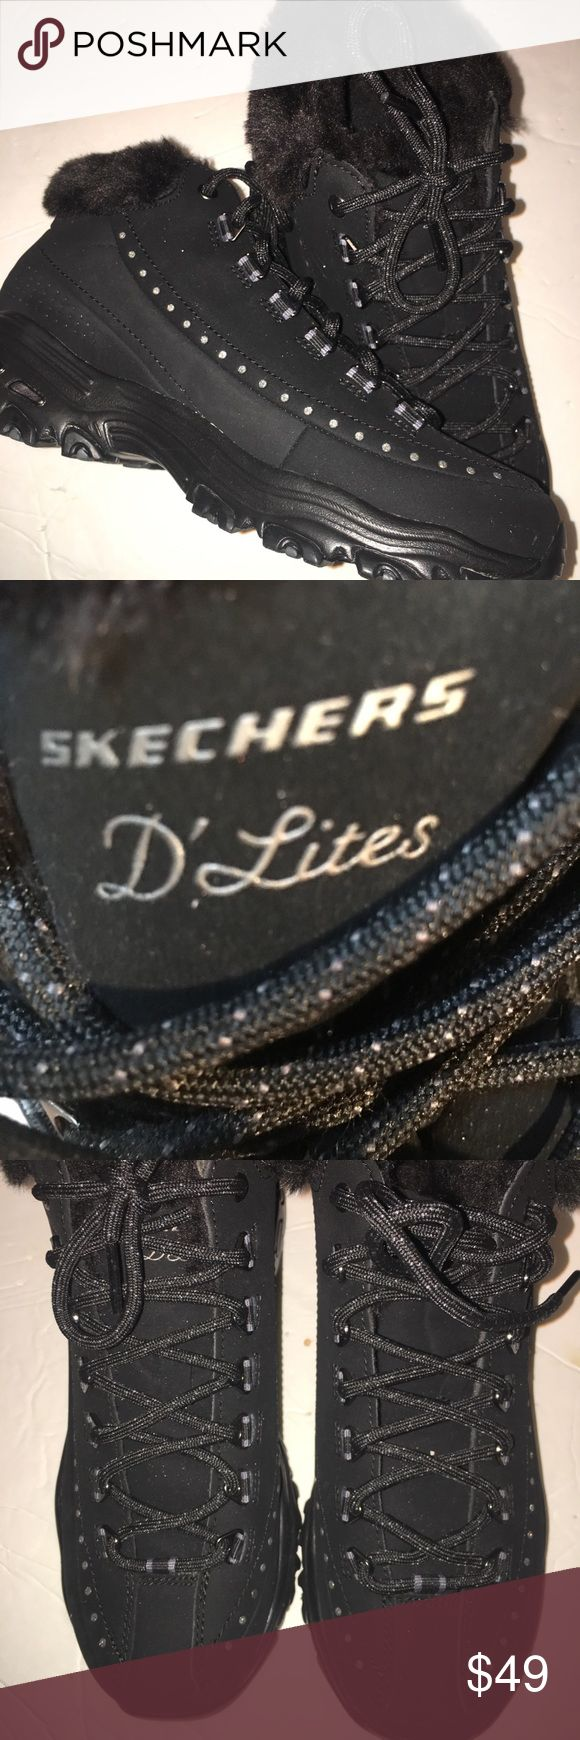 New sketchers D'Lites Really cute! Has slight silvery sparkles throughout the black with a trim of silver dots. Fur lined. No box Skechers Shoes Sneakers